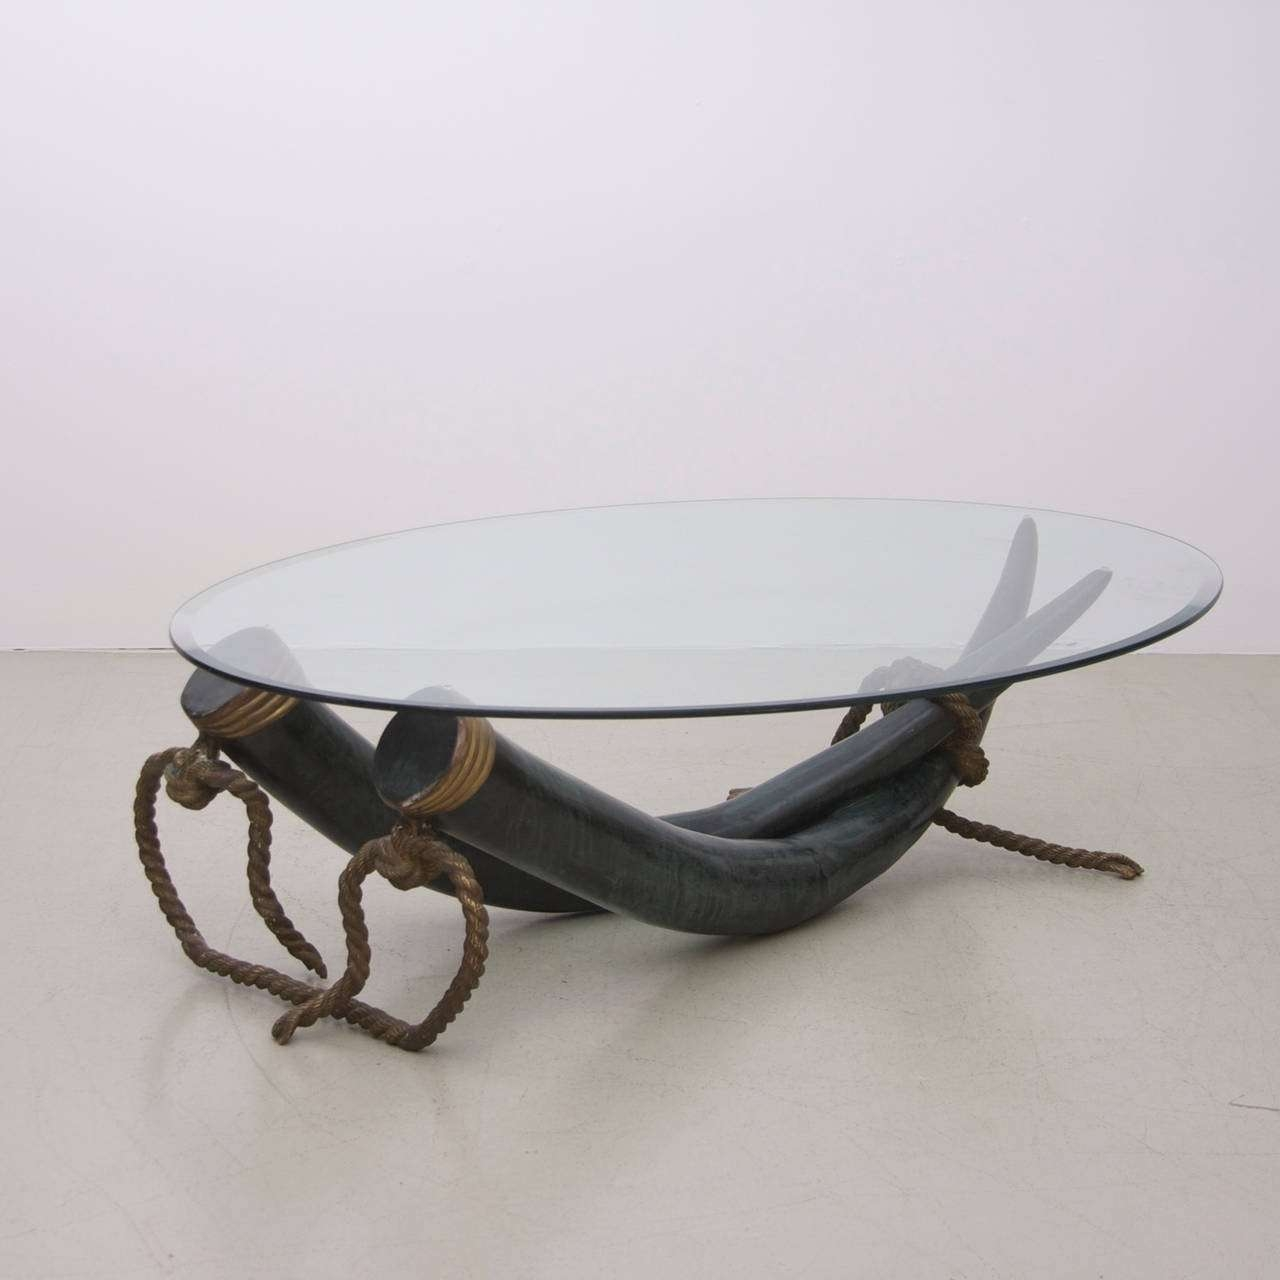 Famous Elephant Coffee Tables In Huge Bronze And Brass Elephant Tusk Coffee Tableitalo Valenti (View 12 of 20)